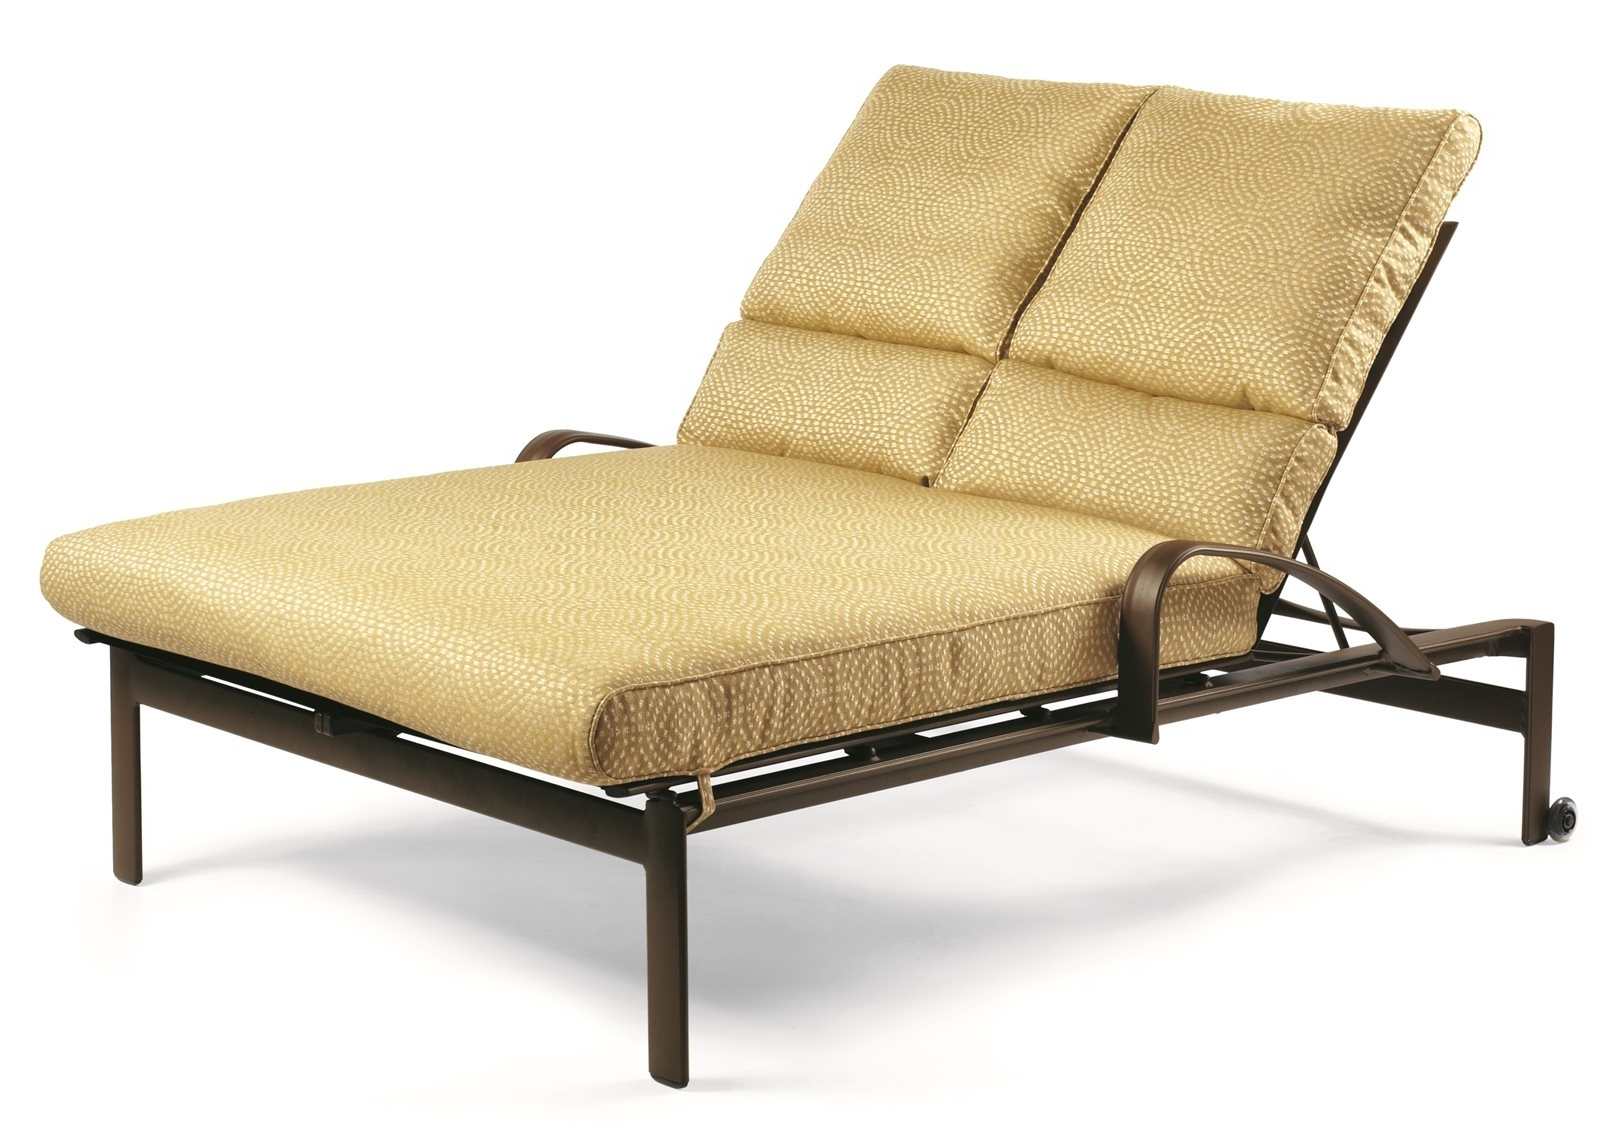 Well Liked Garden Bench Cushion Replacement Sun Lounger Cushions Outdoor Throughout Double Chaise Lounge Cushions (View 6 of 15)